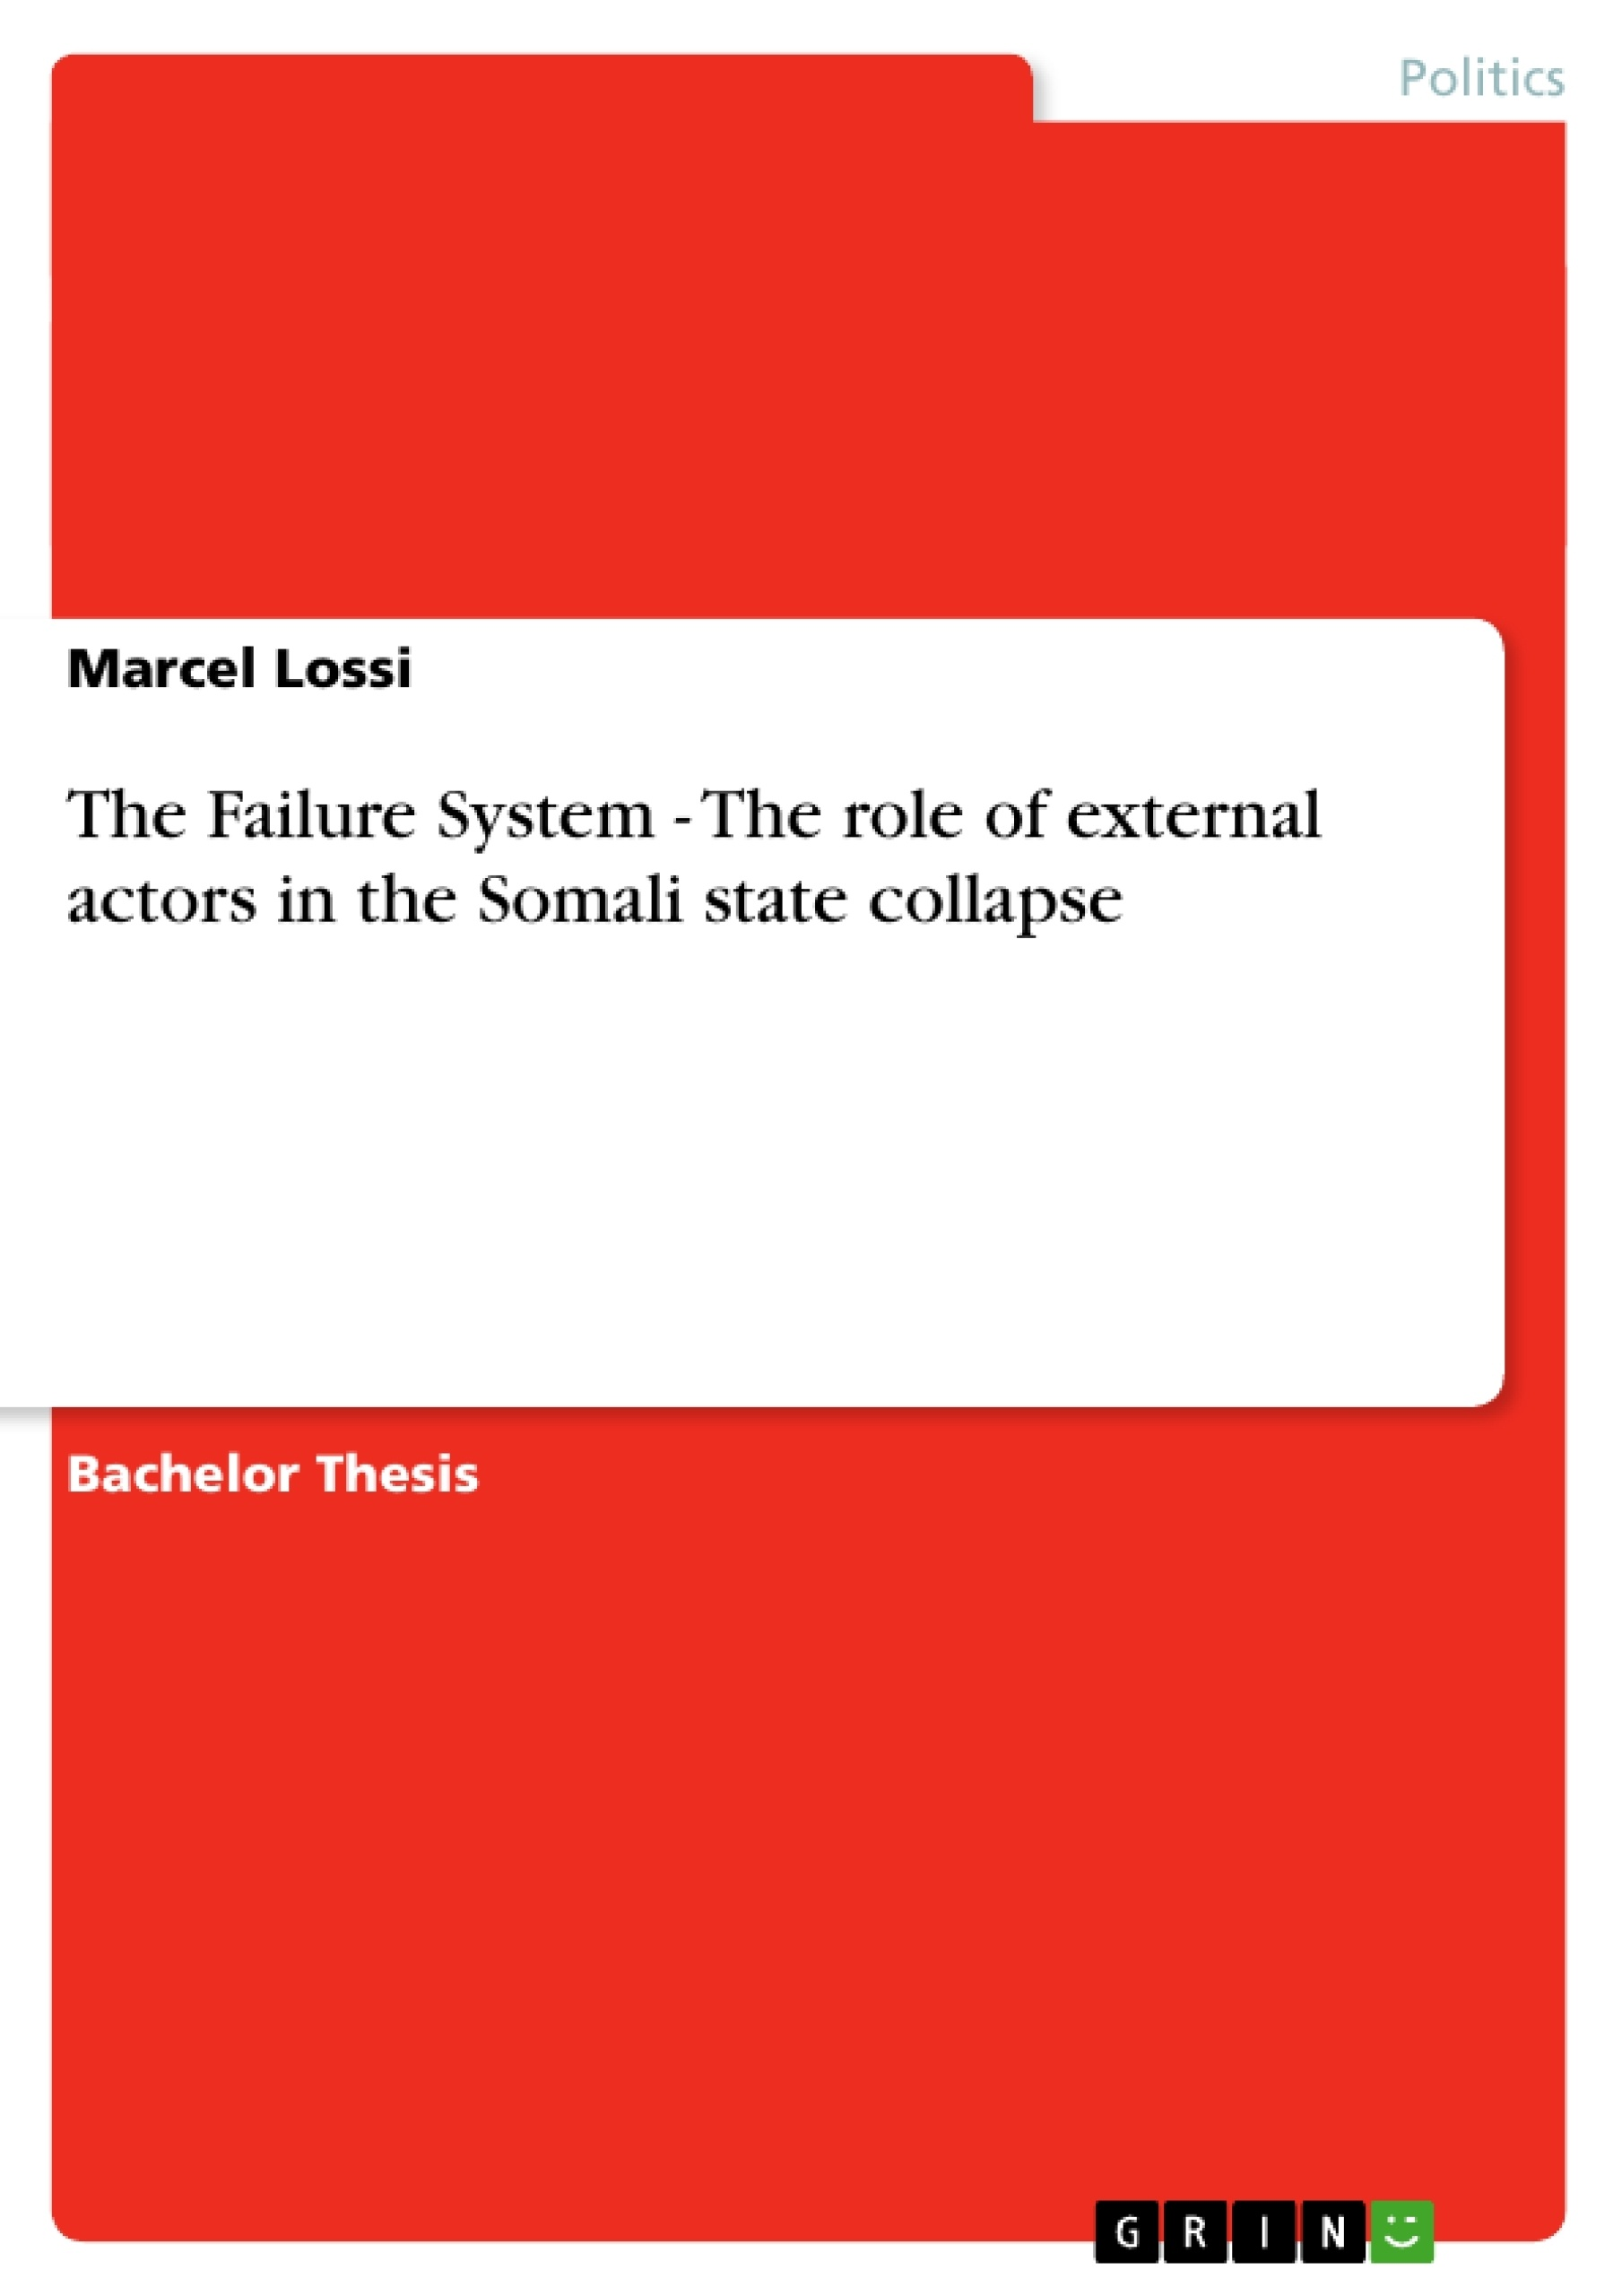 Title: The Failure System - The role of external actors in the Somali state collapse